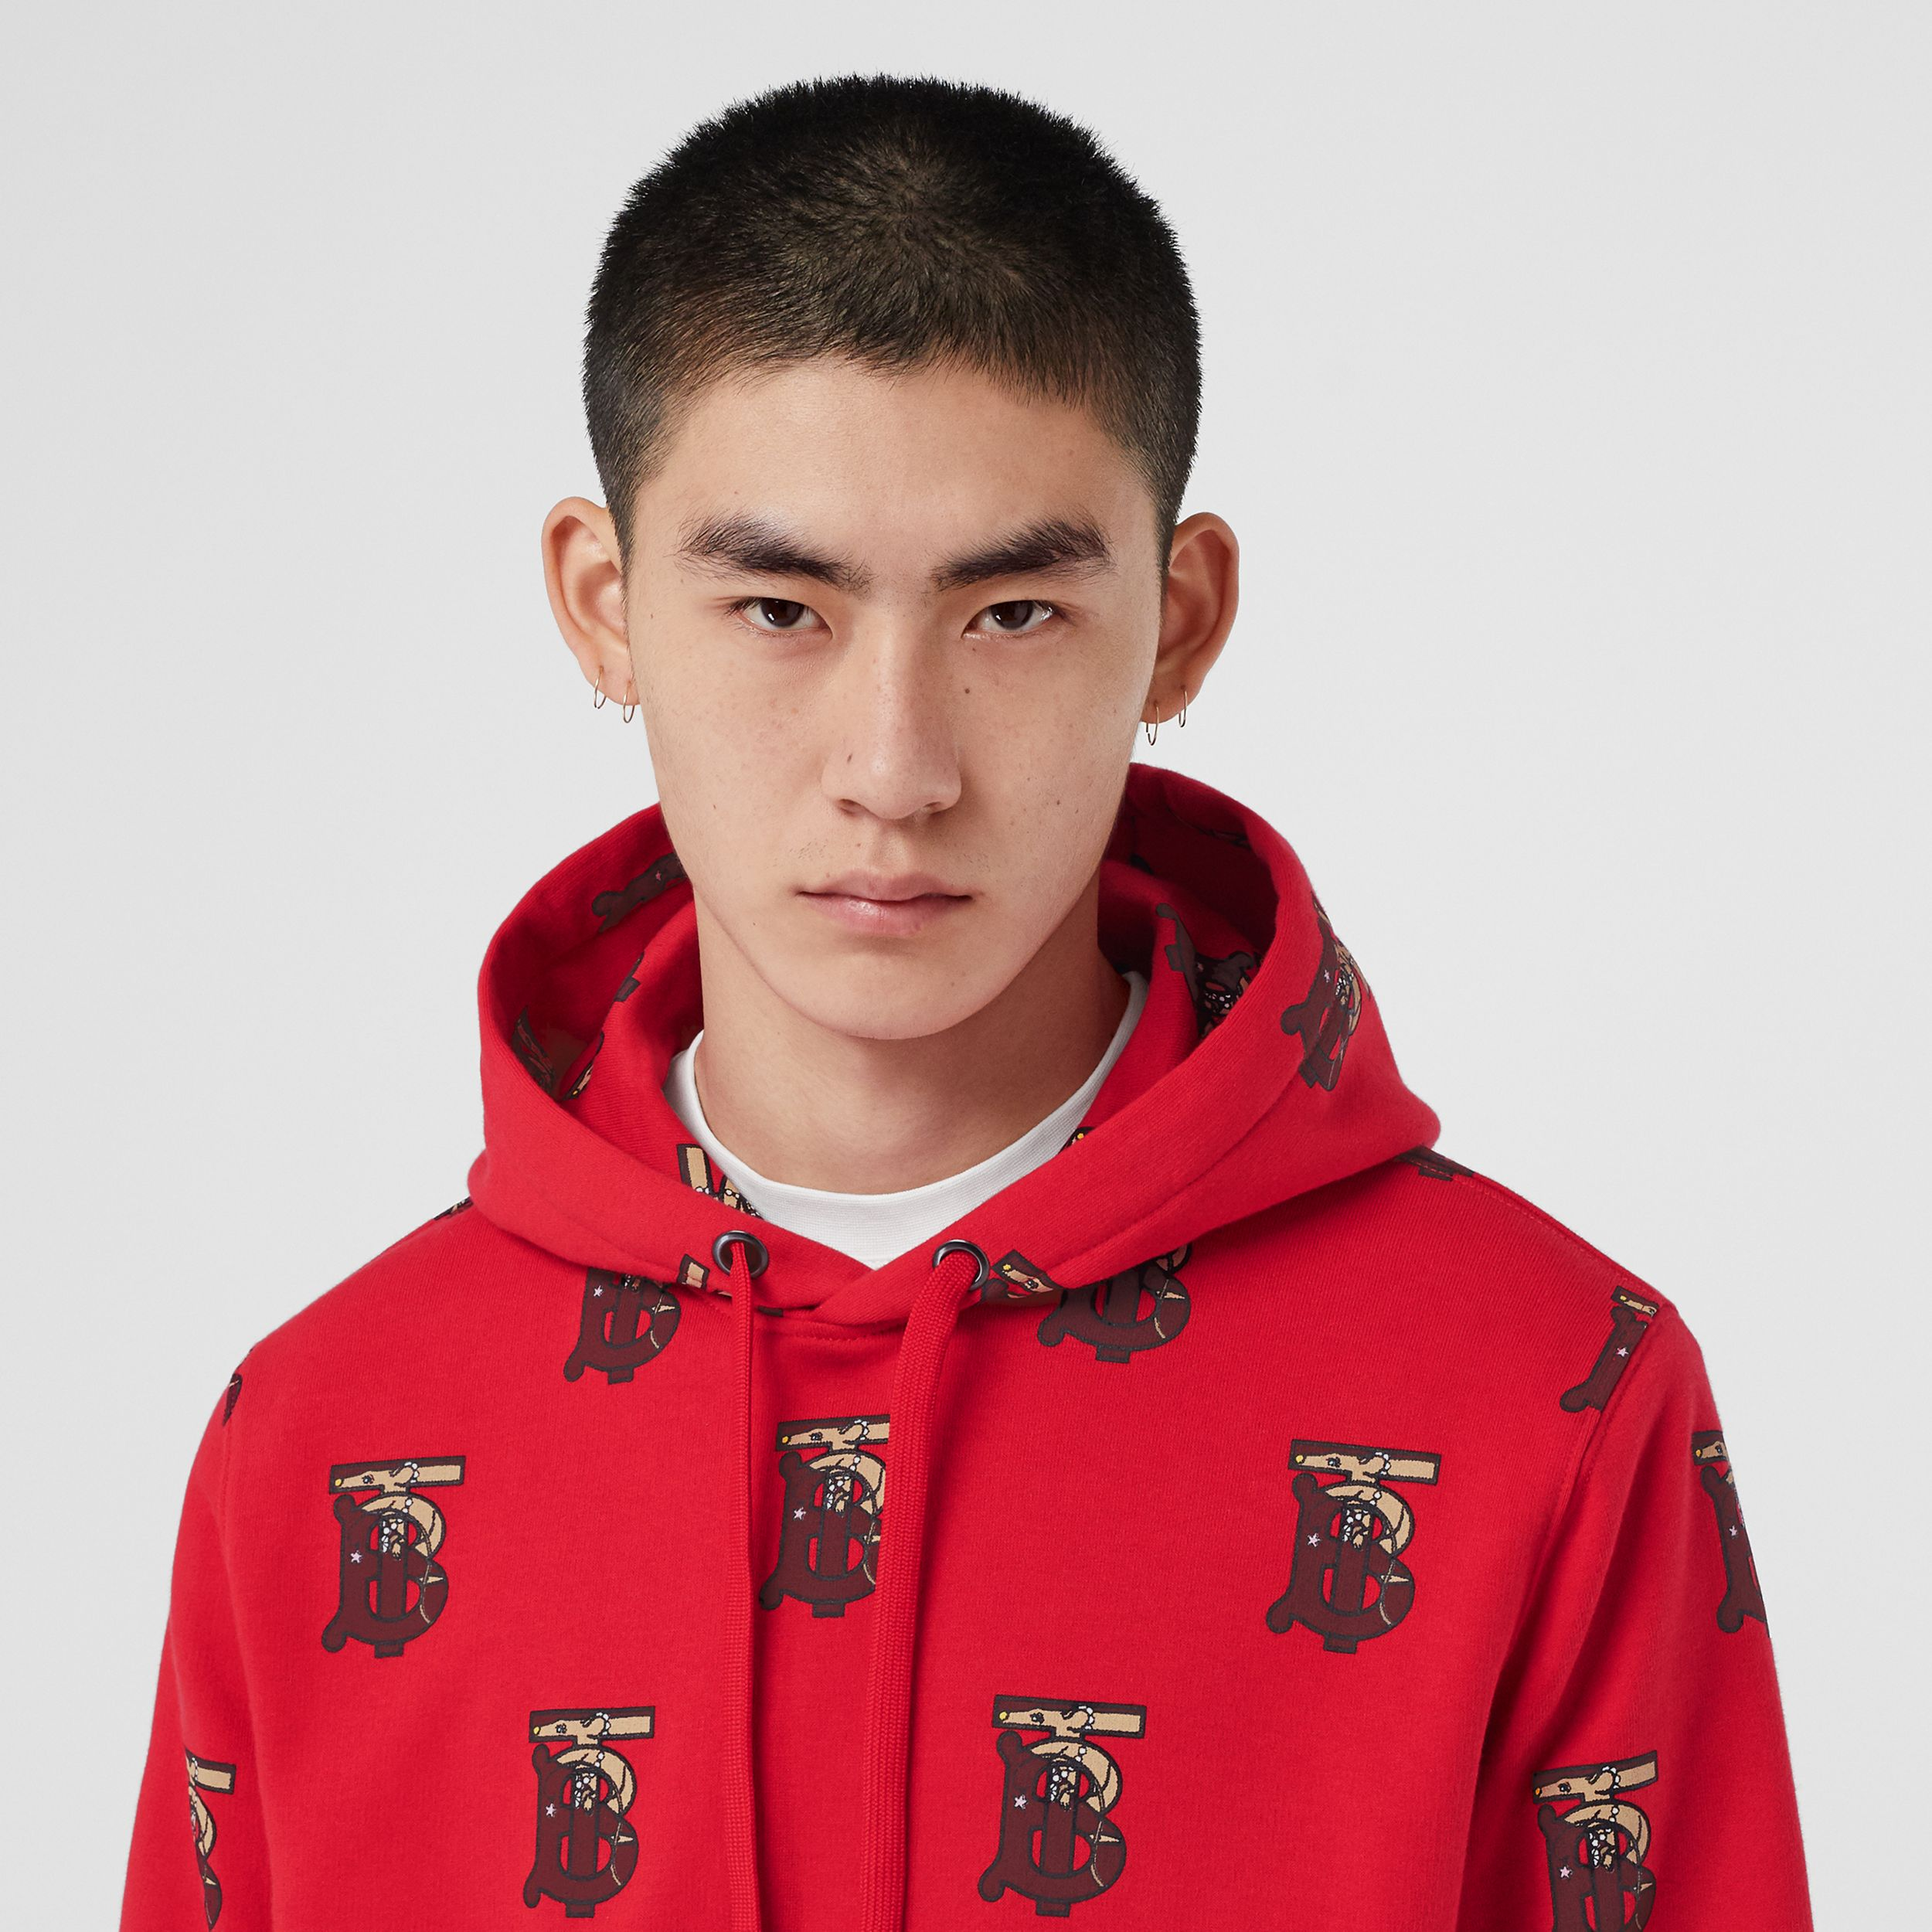 Monogram Motif Cotton Oversized Hoodie in Bright Red - Men | Burberry Hong Kong S.A.R. - 2